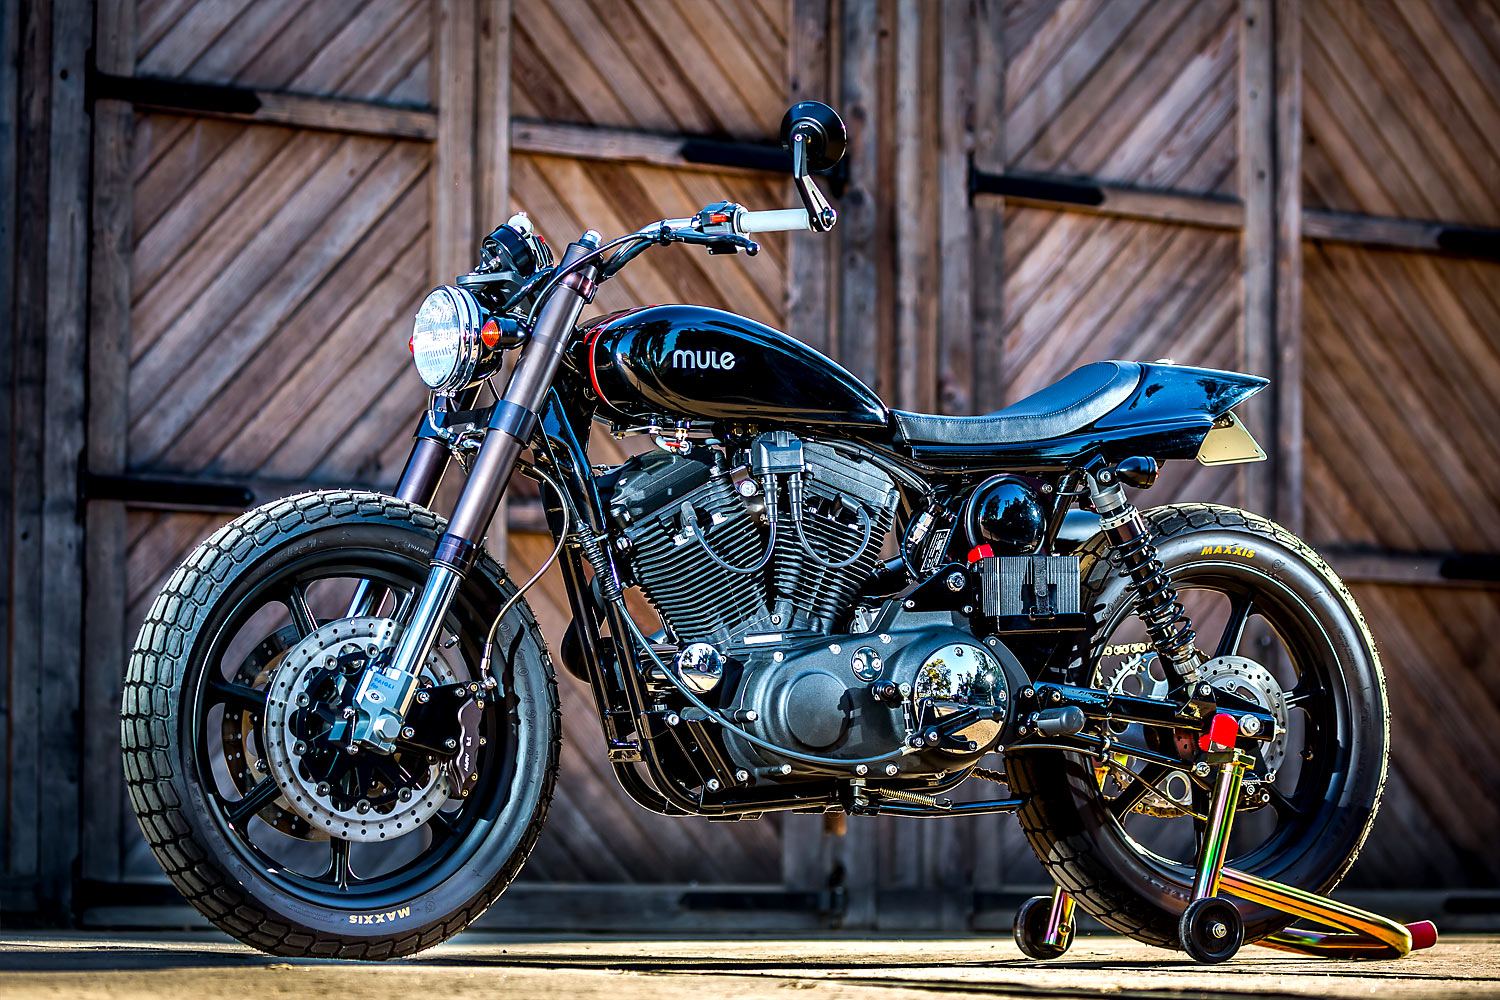 Dont Get Richard Started On What Passes For A Street Tracker These Days That Term Gets Thrown At All Sorts Of Builds Have Absolutely No Link To Dirt